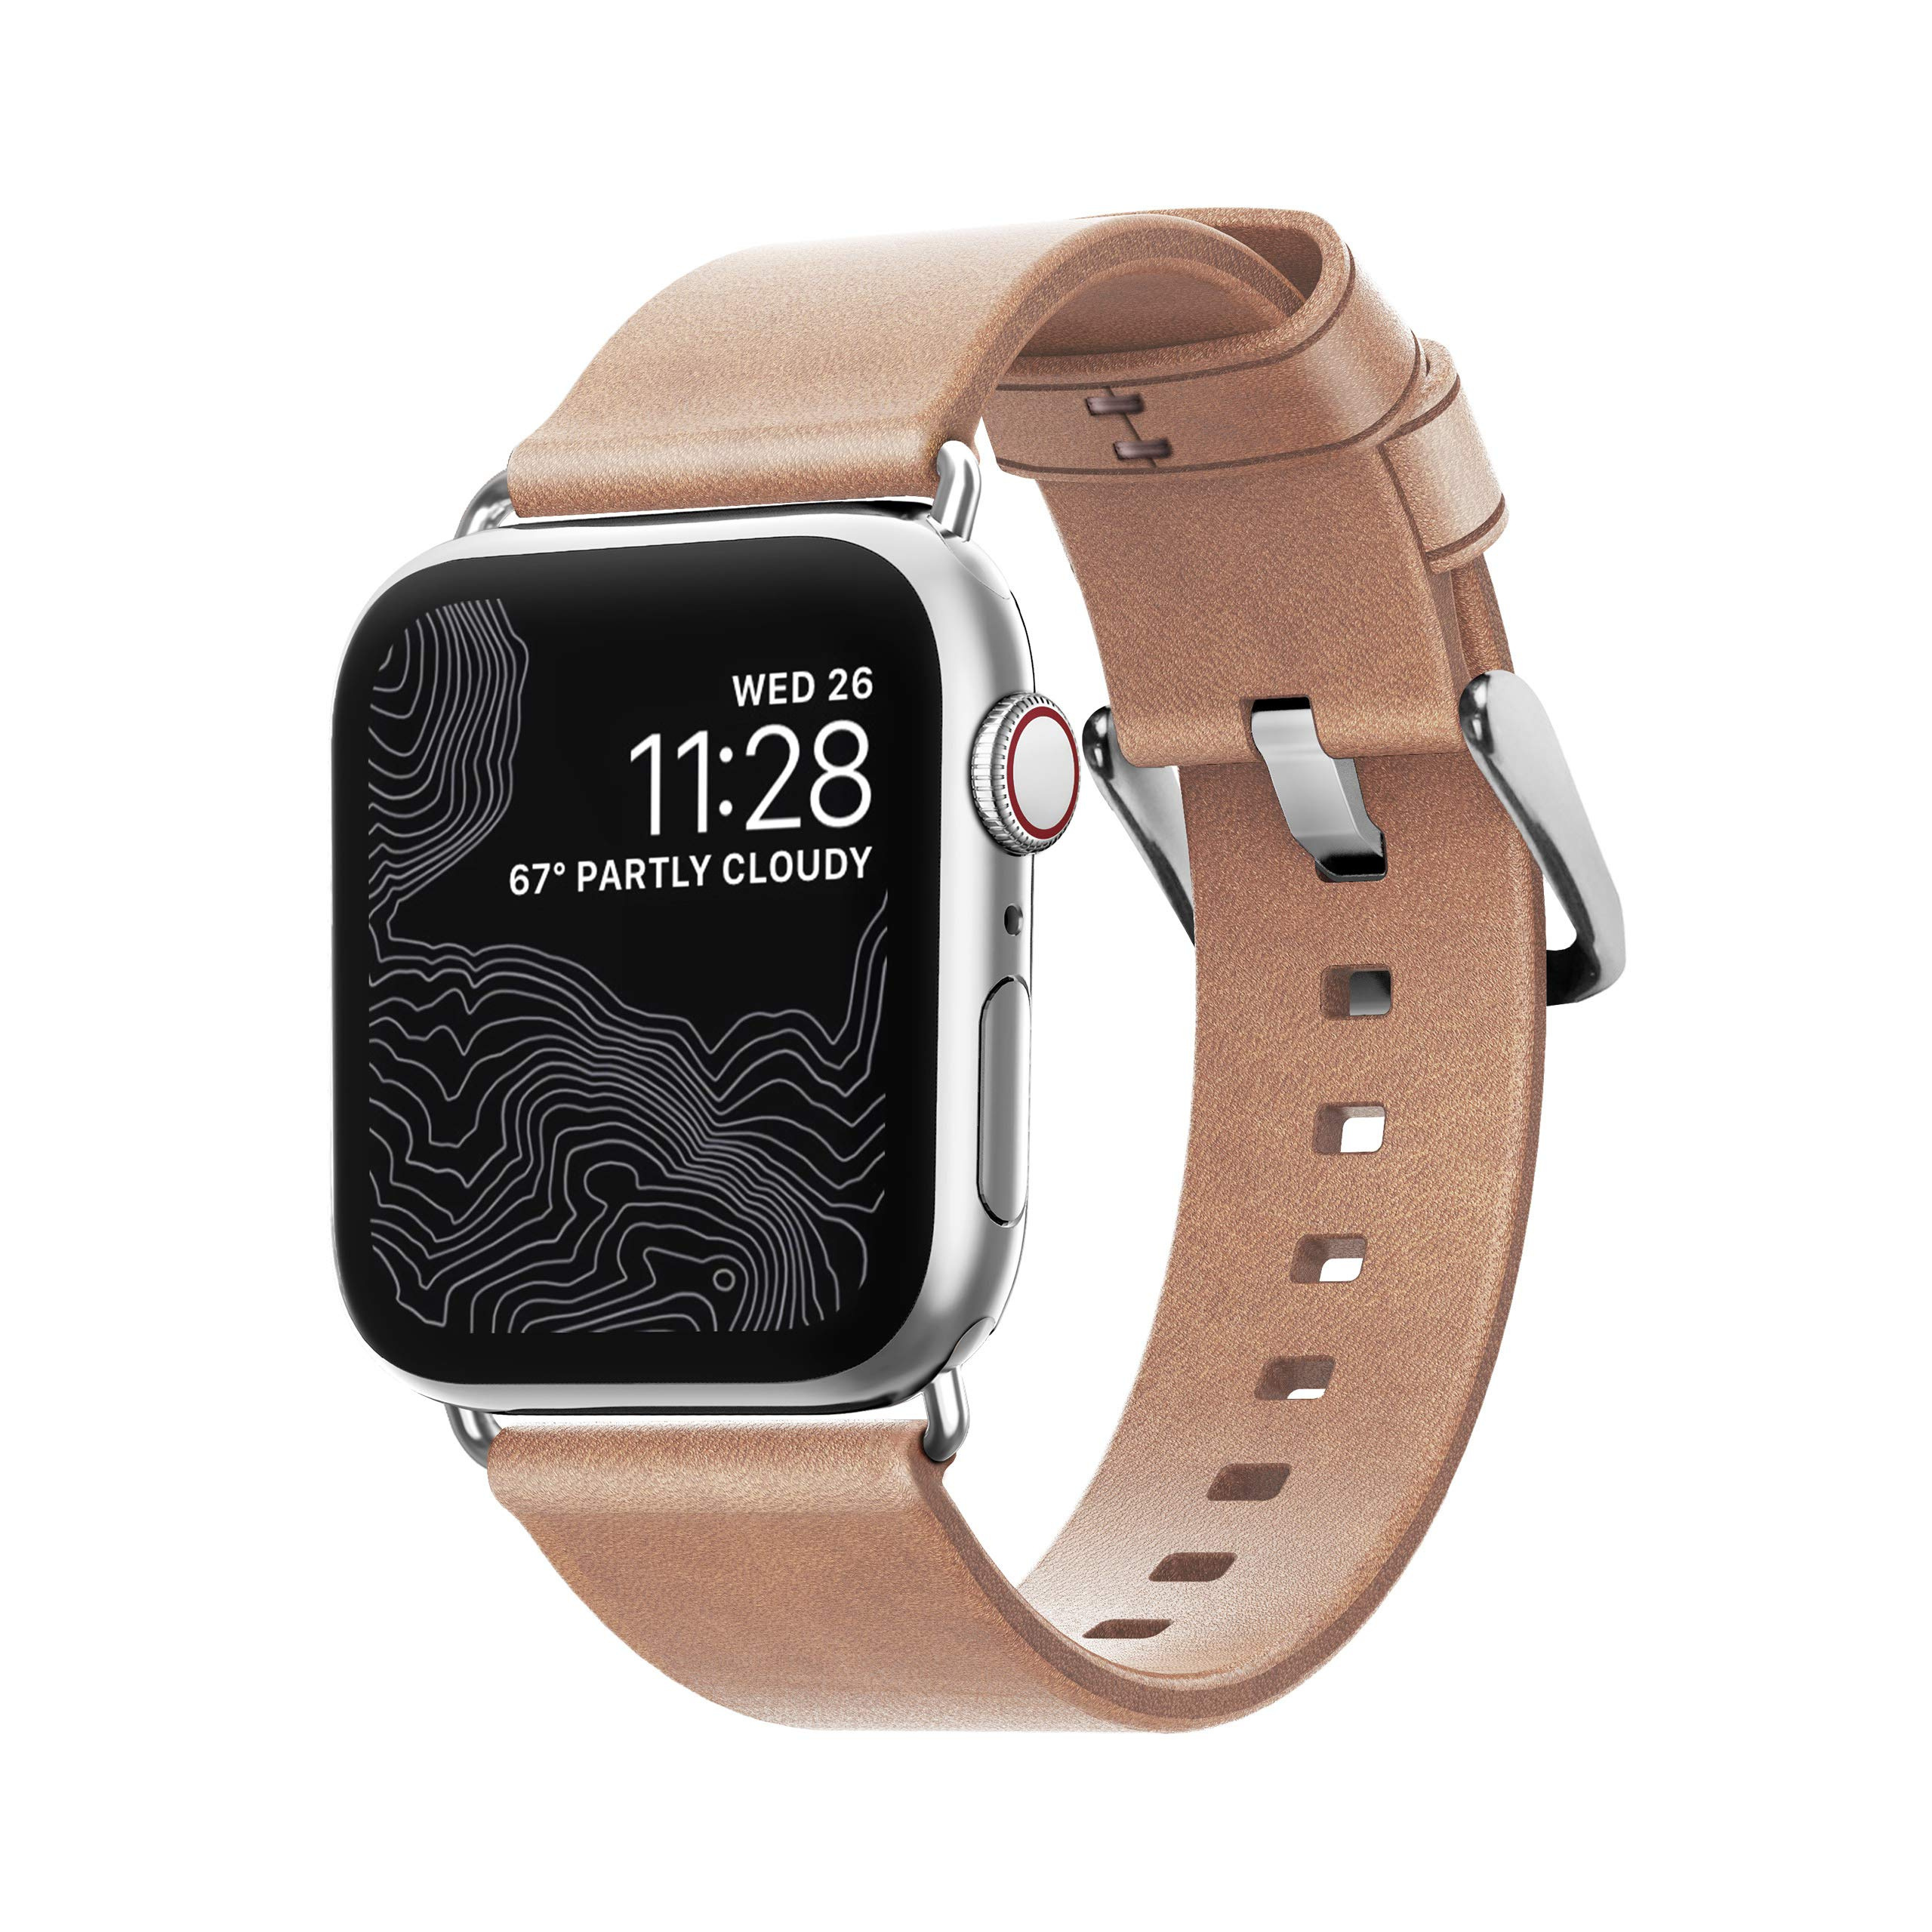 Nomad Modern Strap (Slim) for Apple Watch 40mm/38mm | Natural Horween Leather | Silver Hardware by Nomad